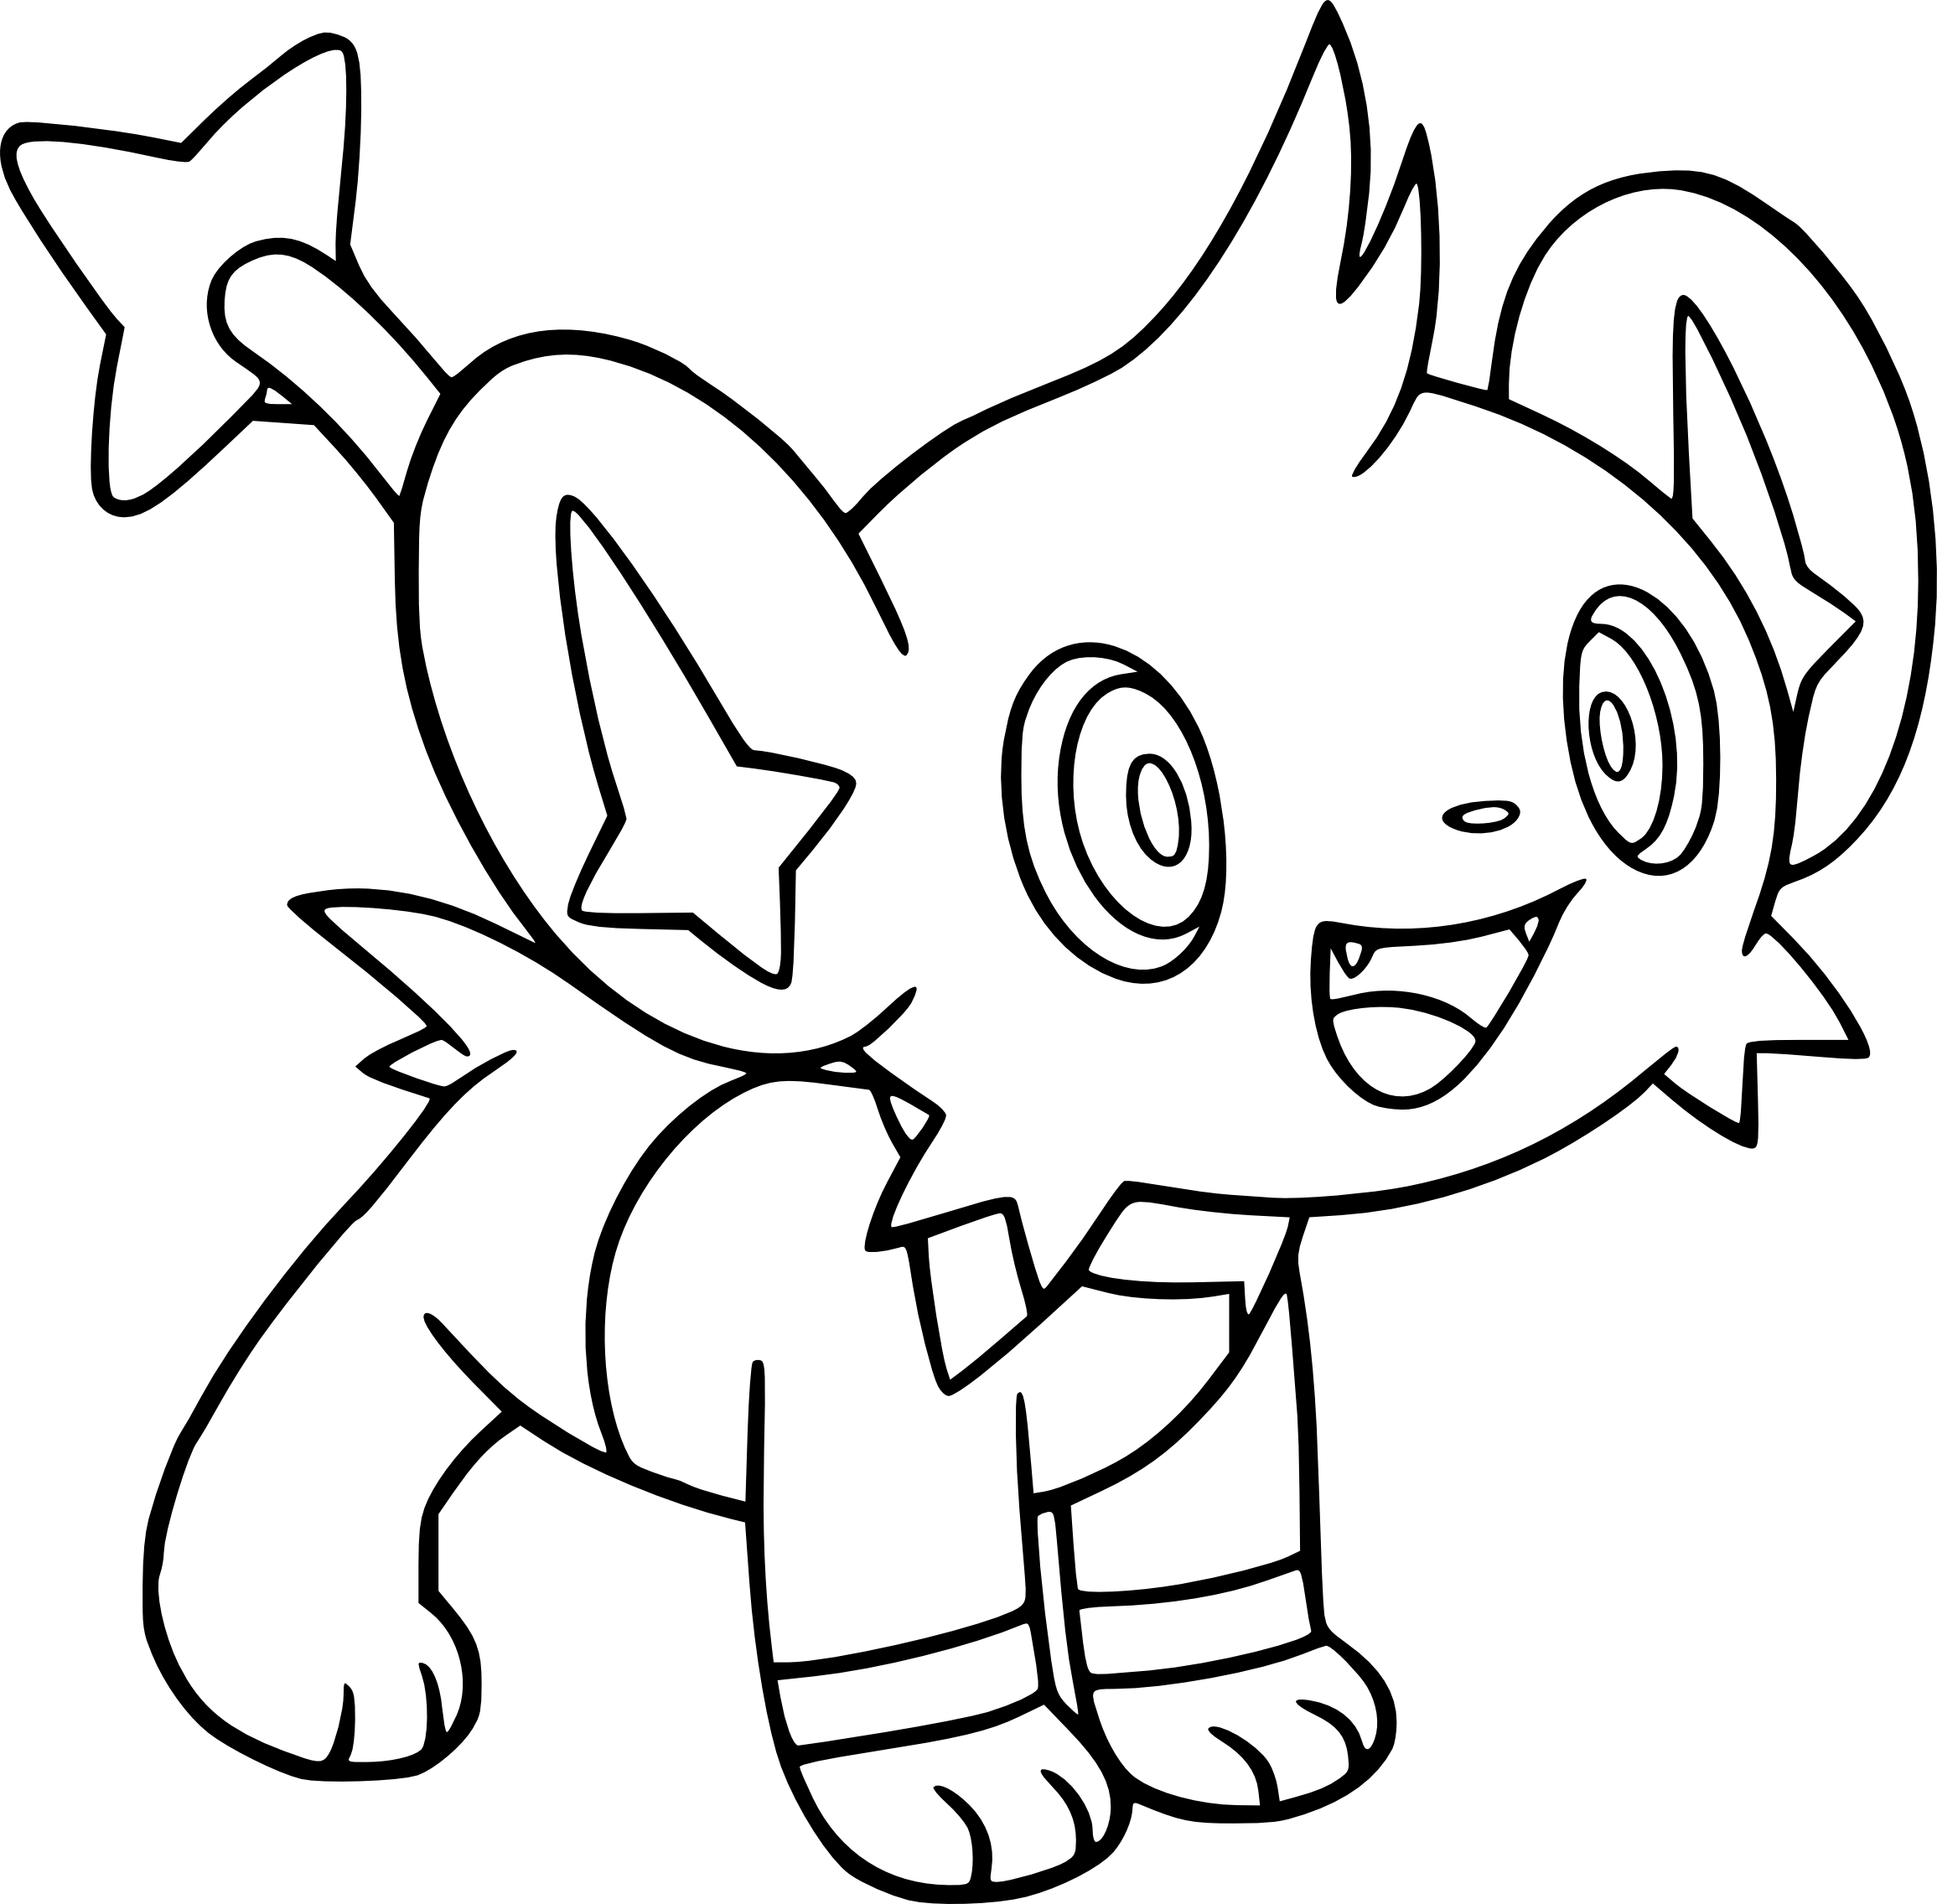 Coloriage lixy pokemon imprimer - Pokemon a imprimer ...